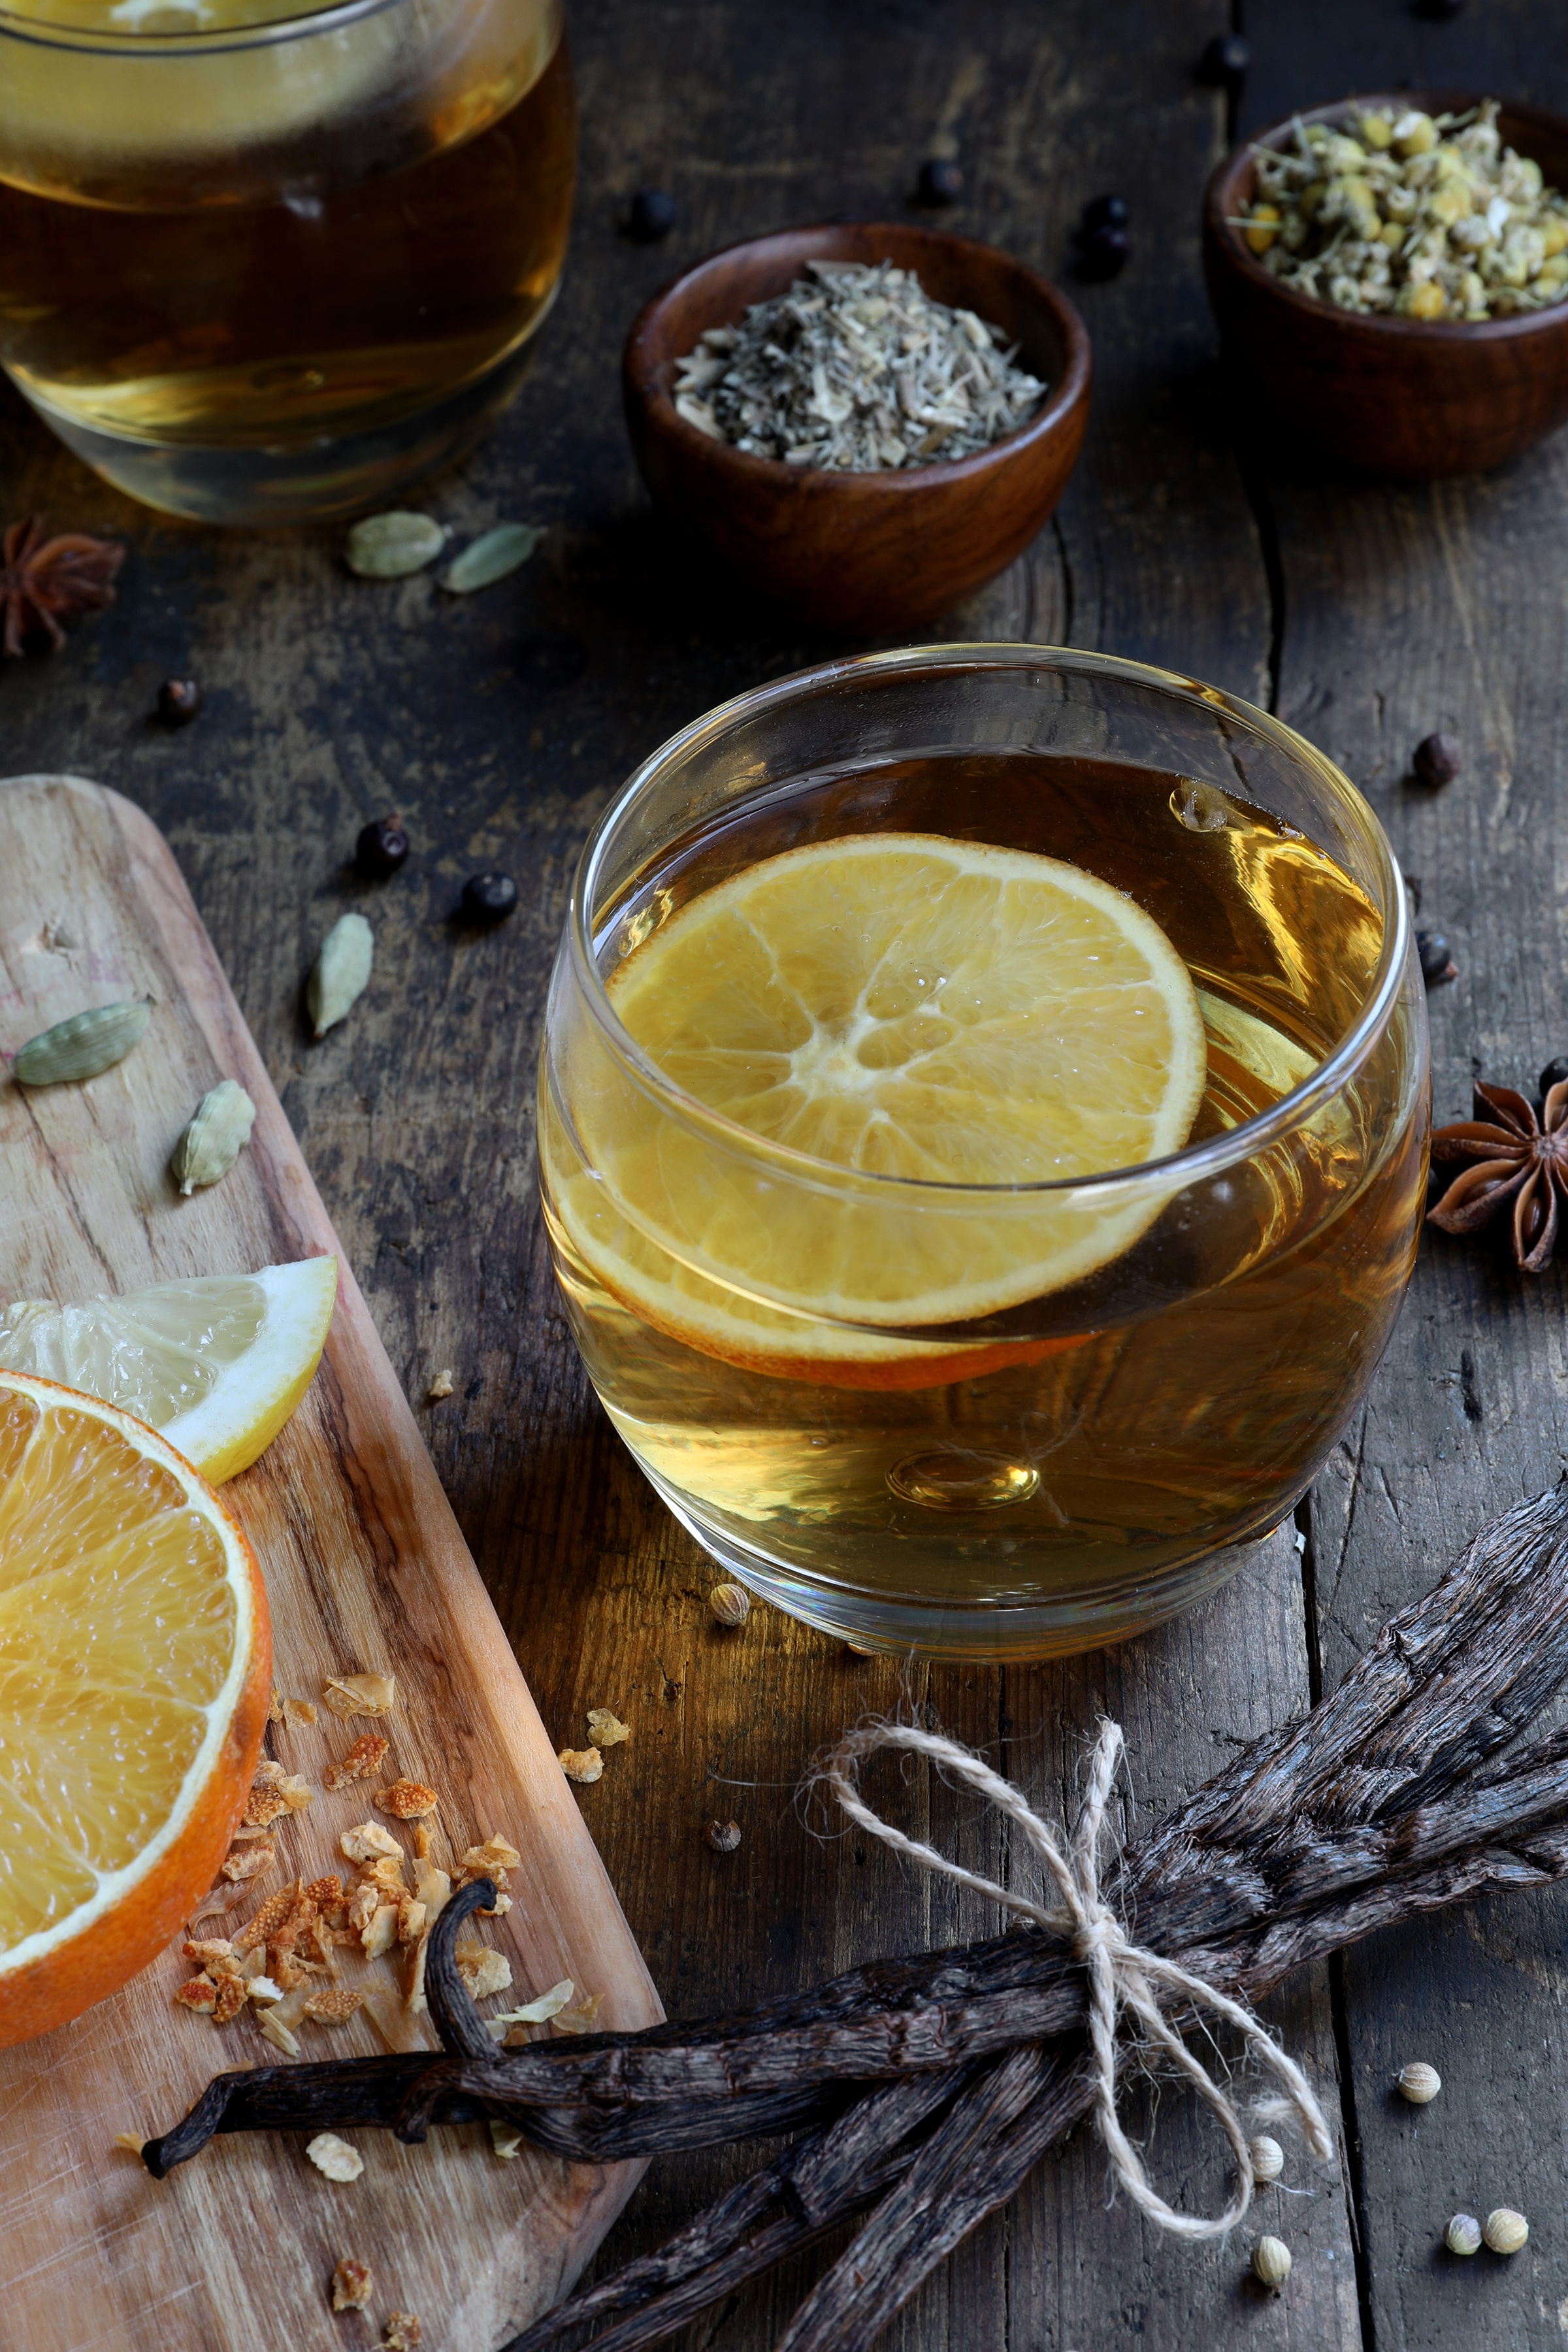 Small wine glass holding herbal vermouth drink with vanilla beans and lemon slices